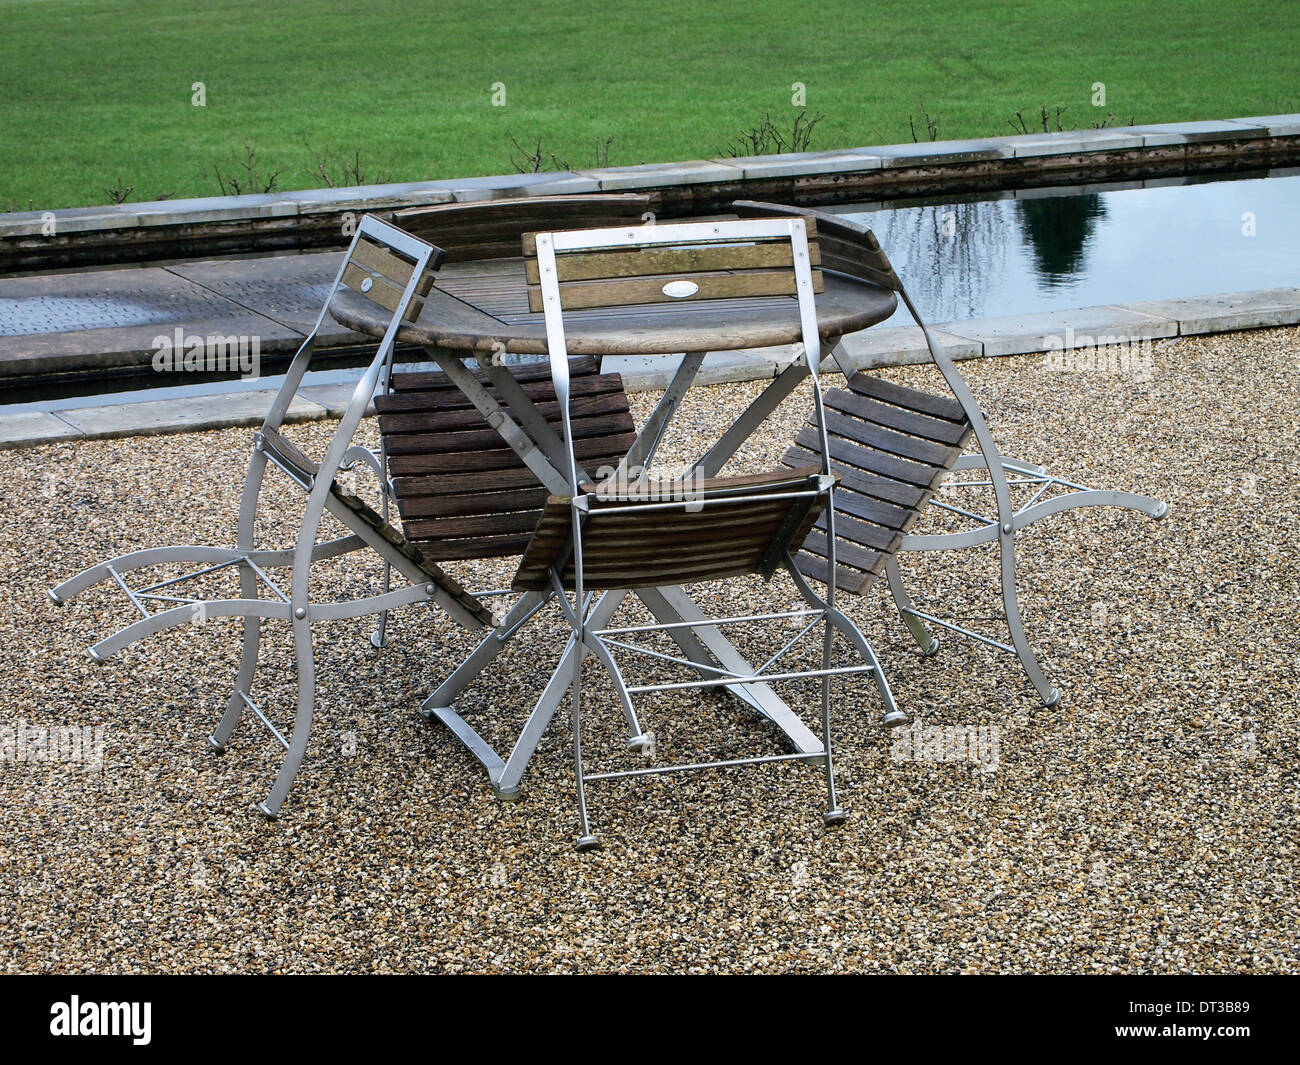 Picnic table and chairs optimistically placed outside a cafe at a public garden at the end of January on a dull wet day. - Stock Image